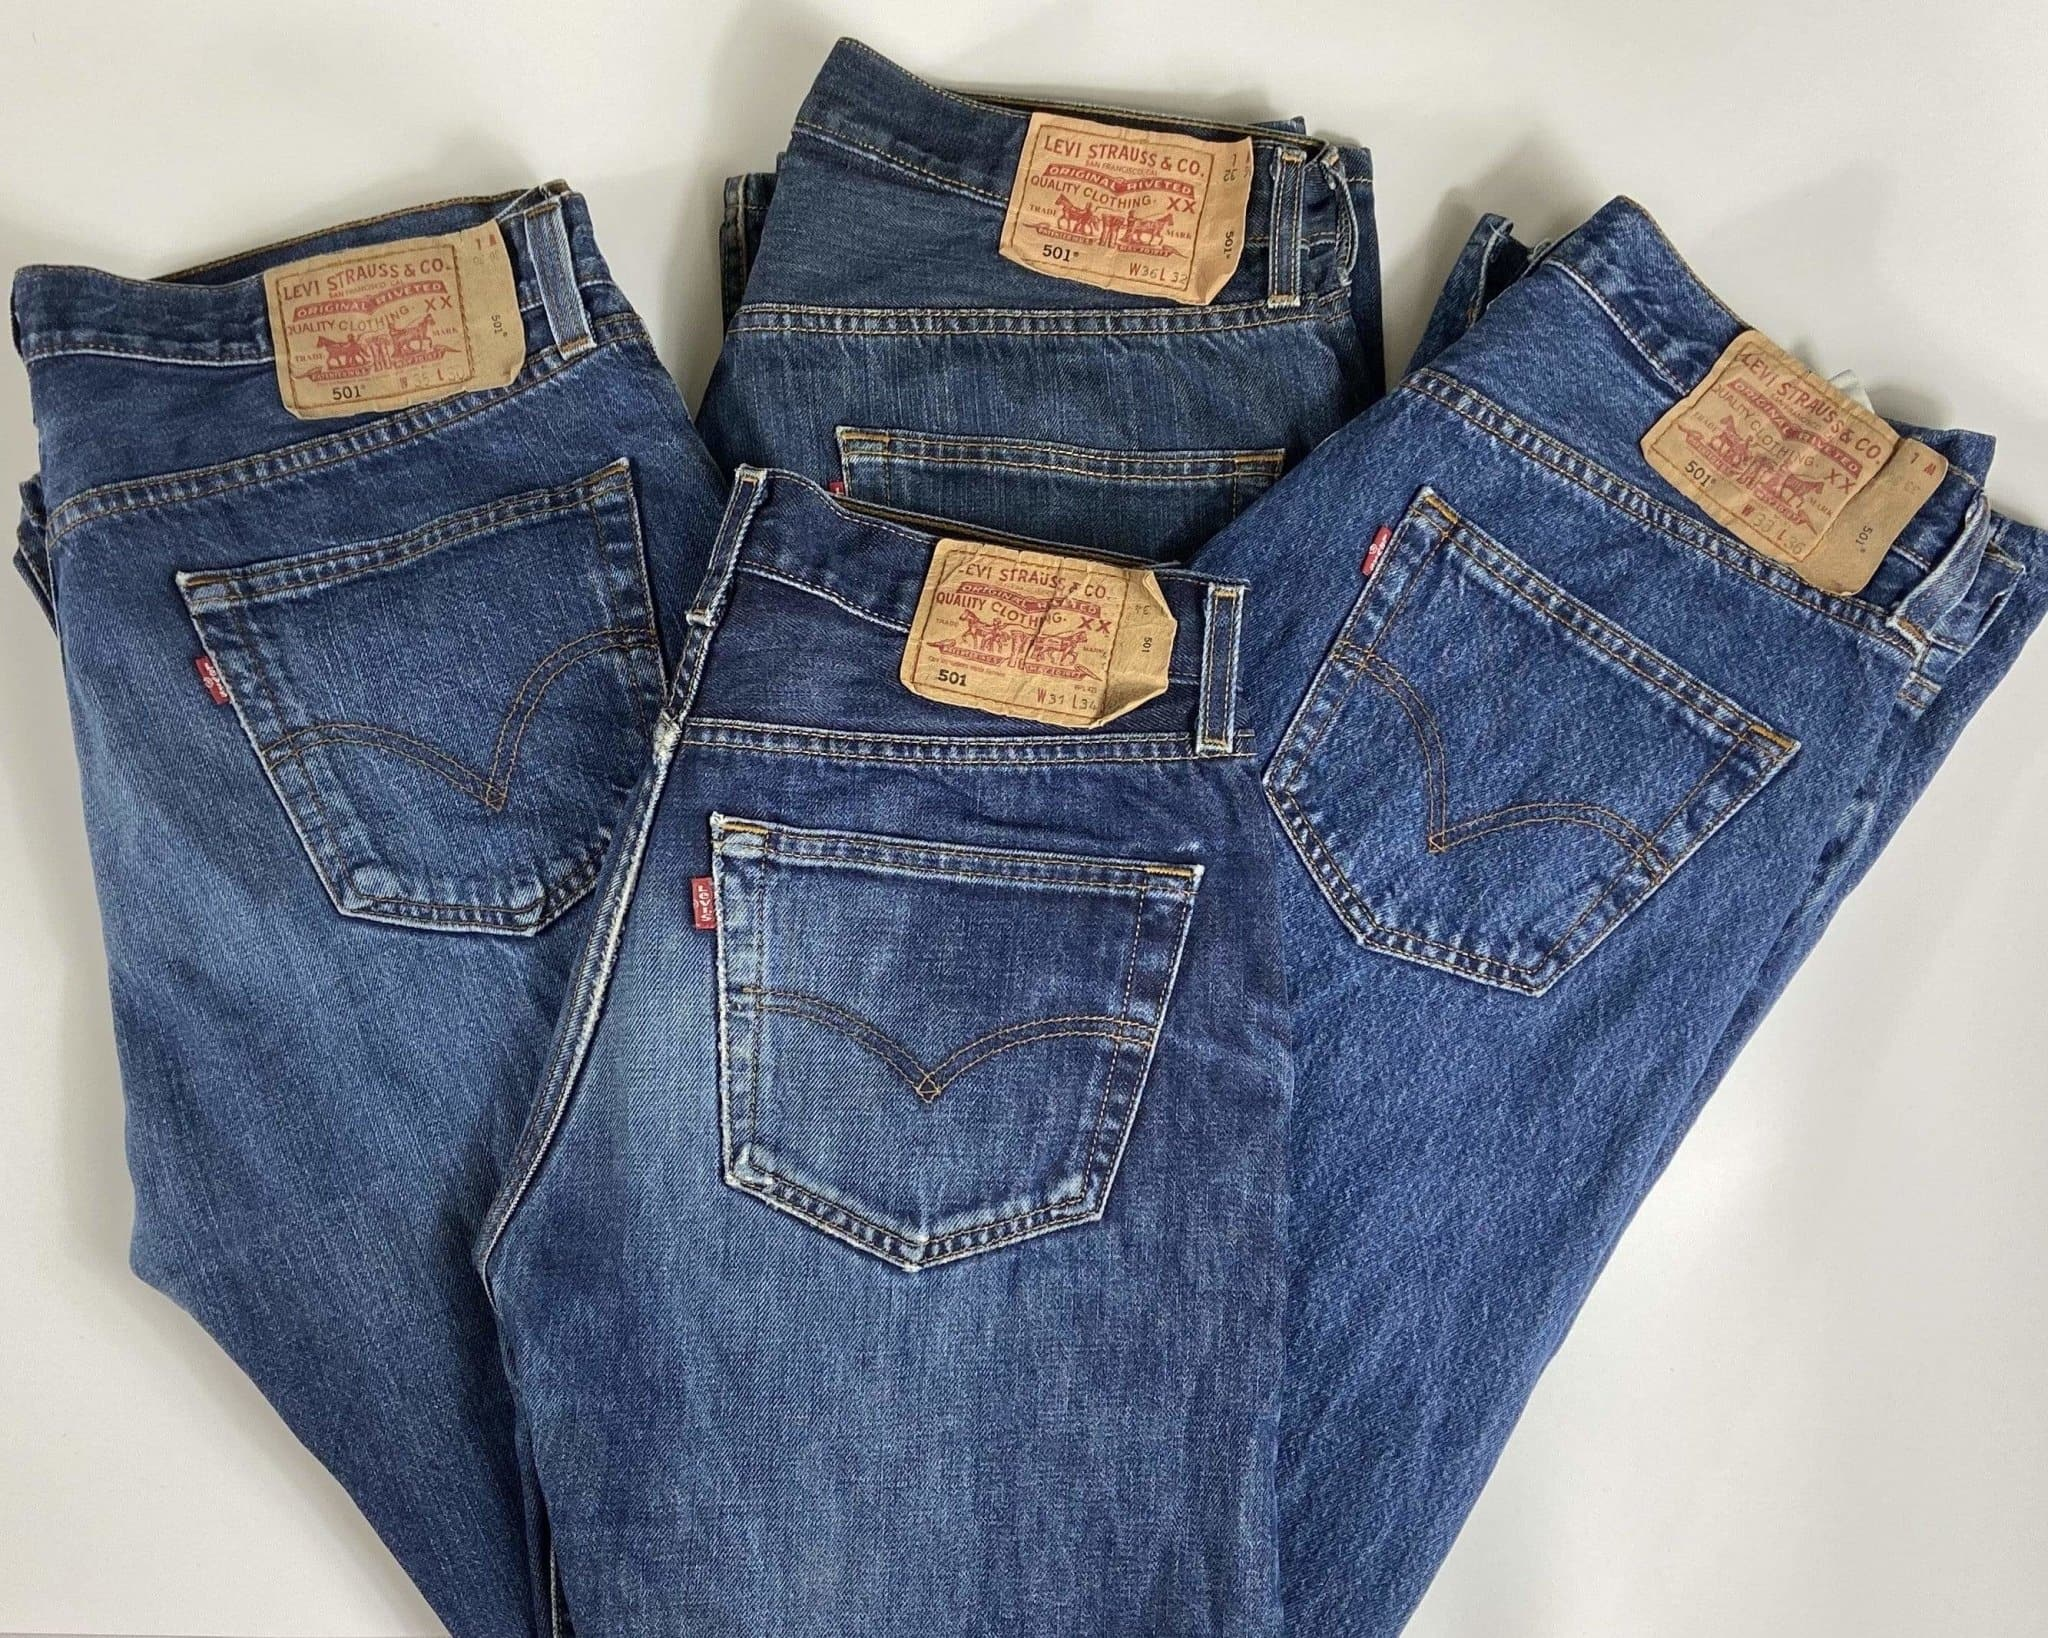 Vintage Levi's Regular Fit 501 Jeans W34 L34 (DHLB2) - Discounted Deals UK